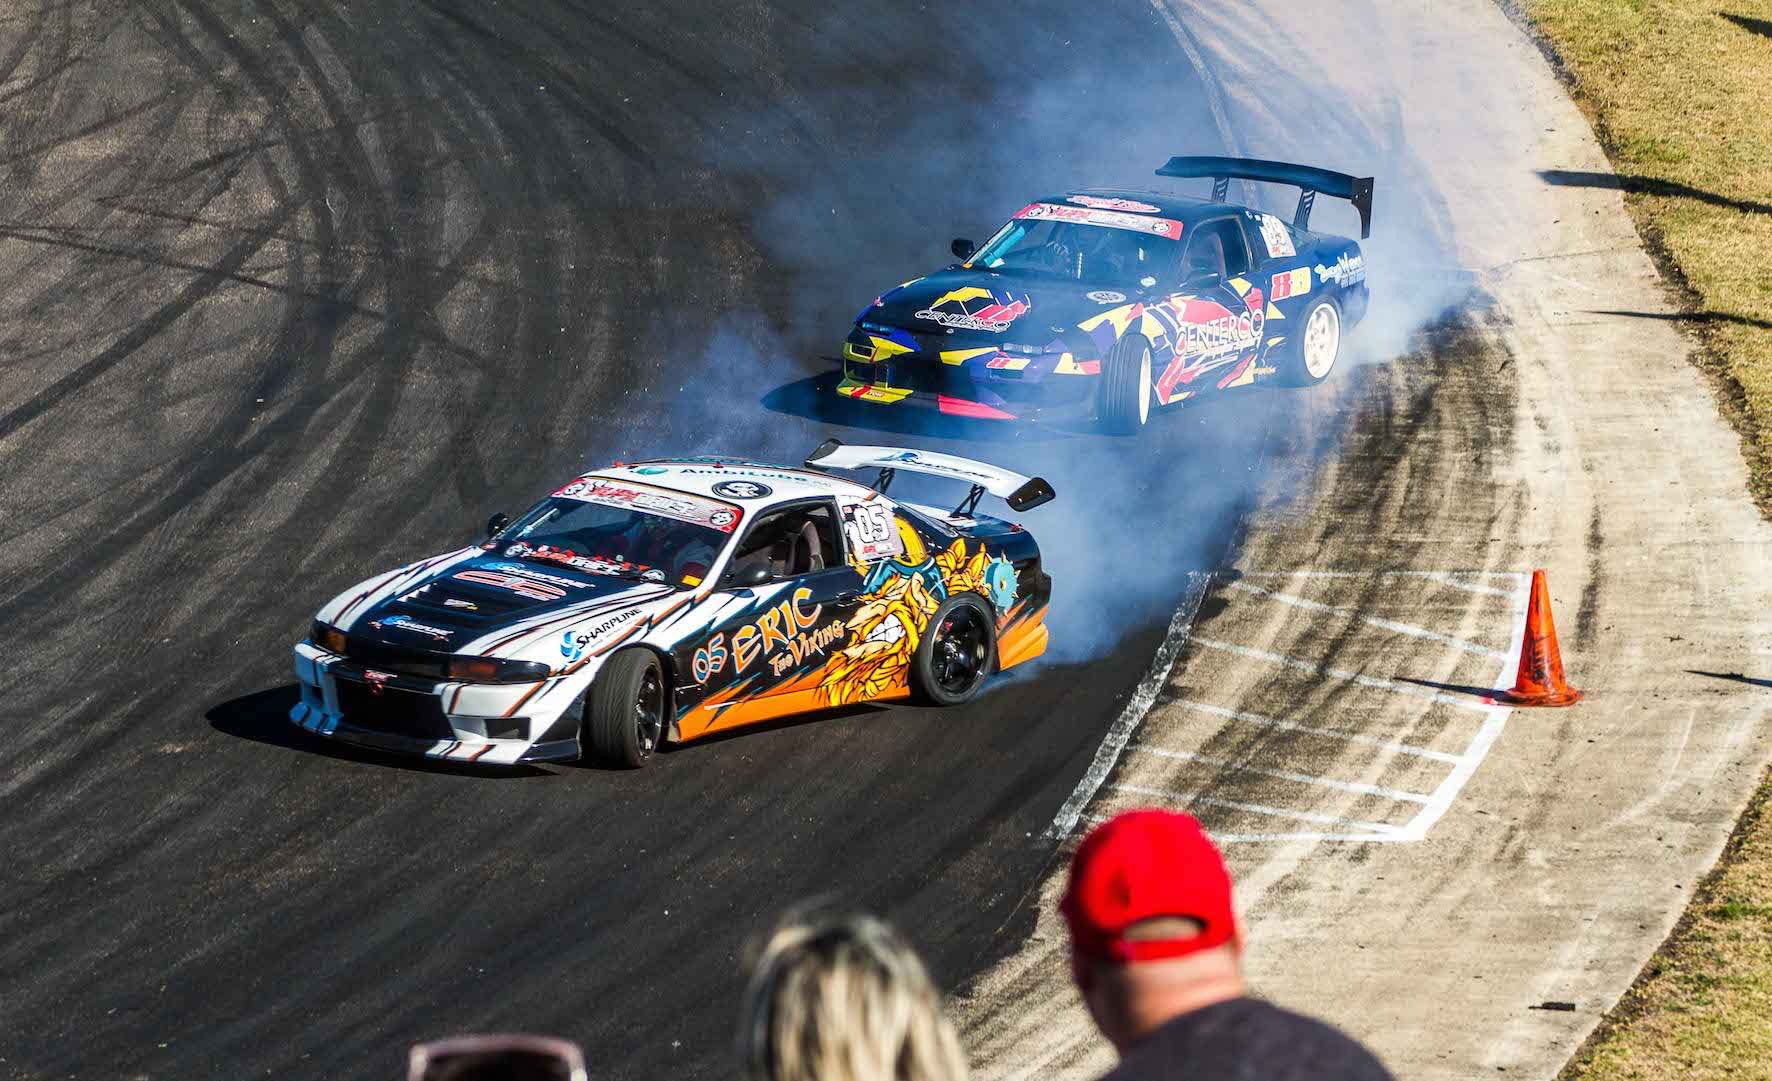 Round 2 of the 2018 SUpaDrift Series saw top class drifting action